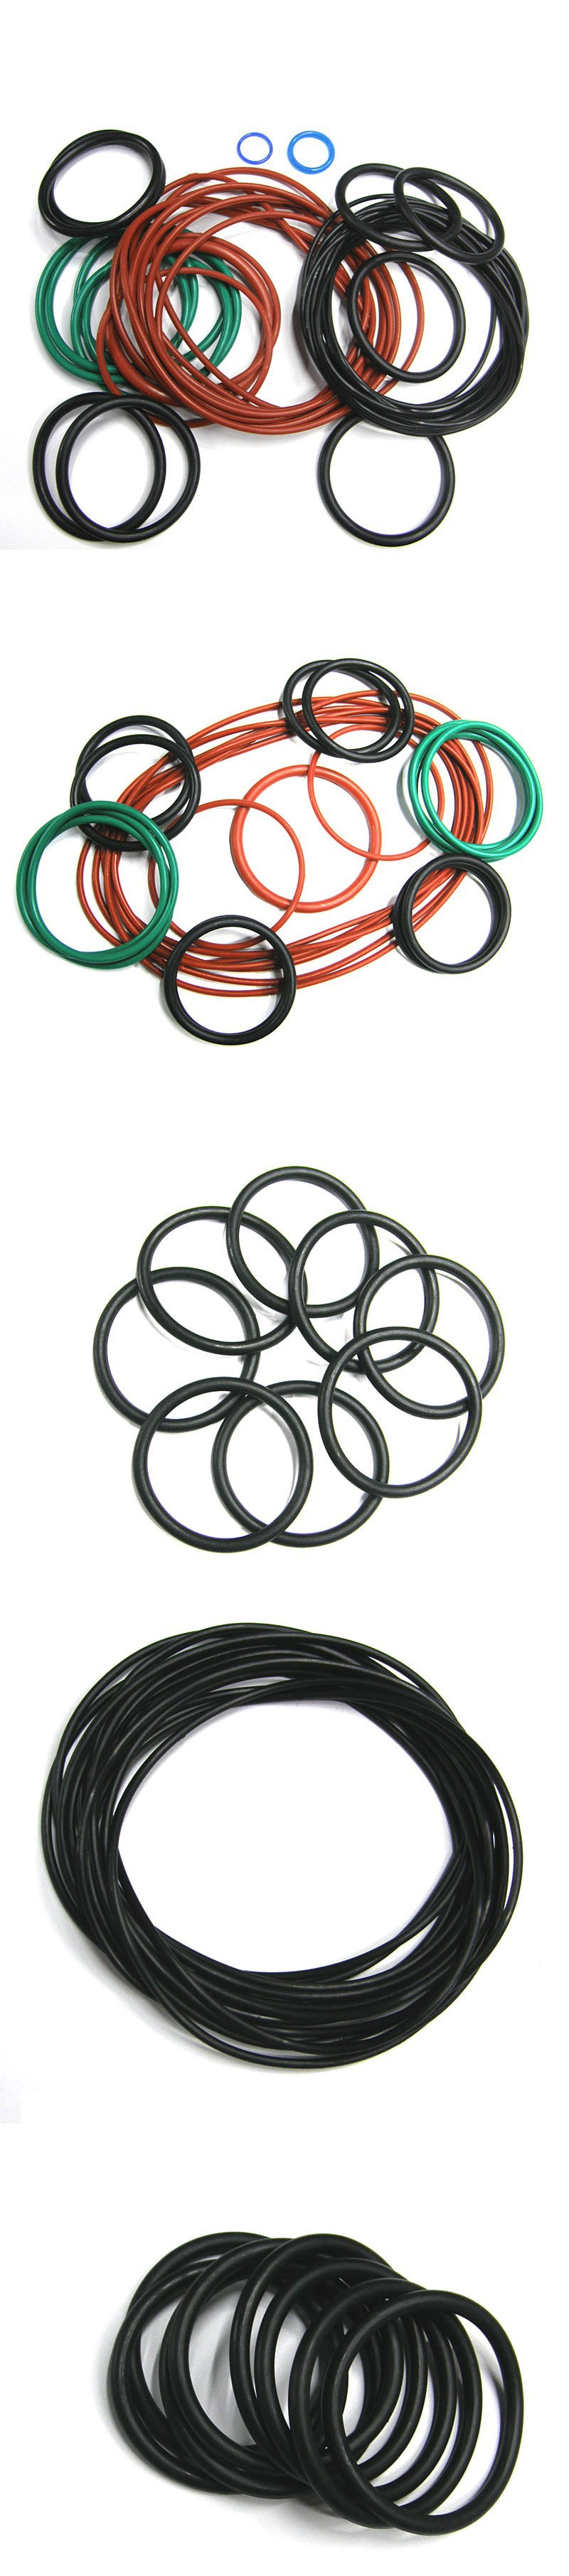 nbr o ring seal dichtung green gasket of motorcycle part. Black Bedroom Furniture Sets. Home Design Ideas